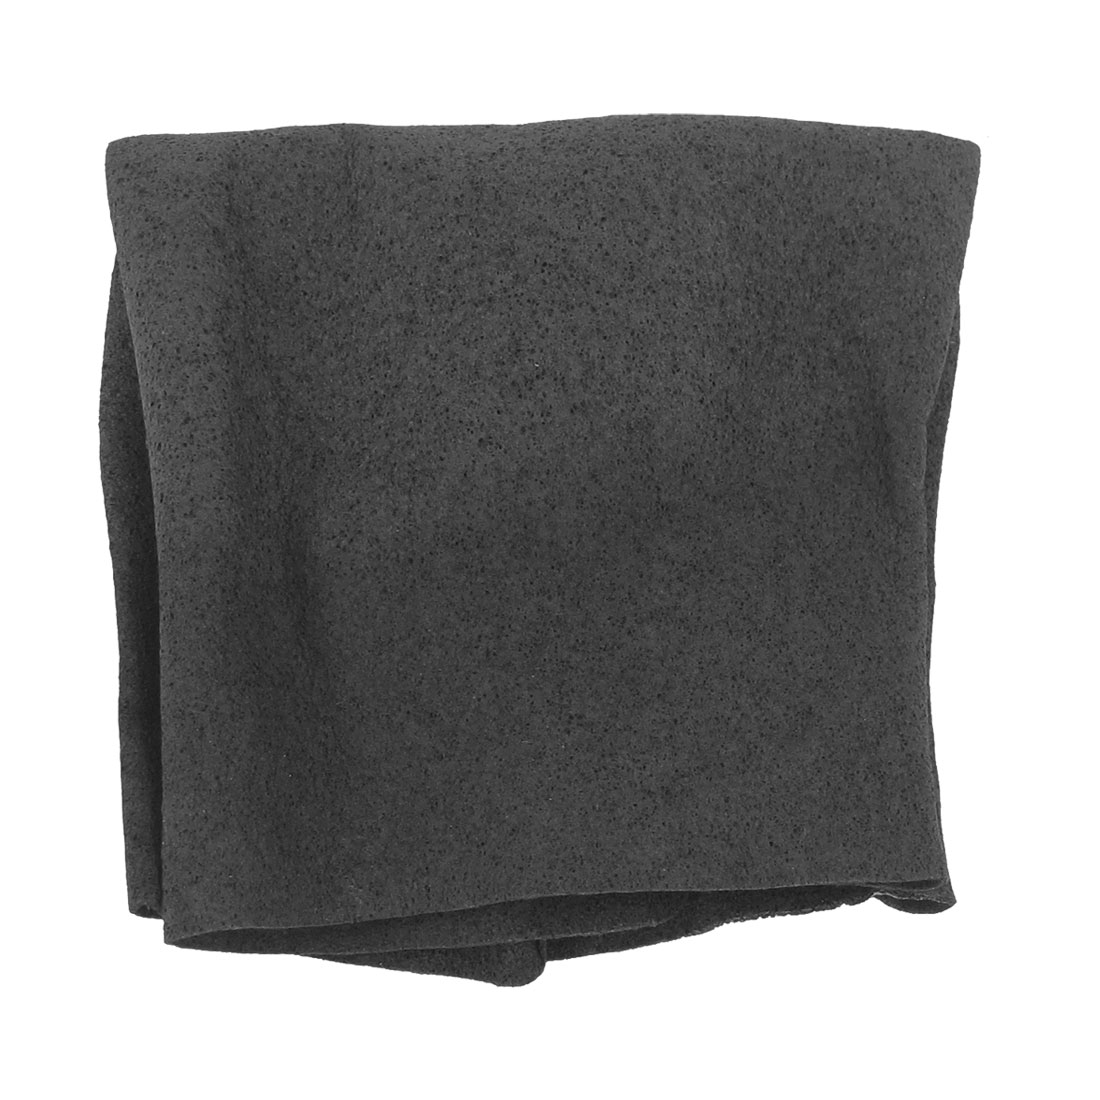 Black Elastic PVA Activated Carbon Makeup Bath Beauty Towel